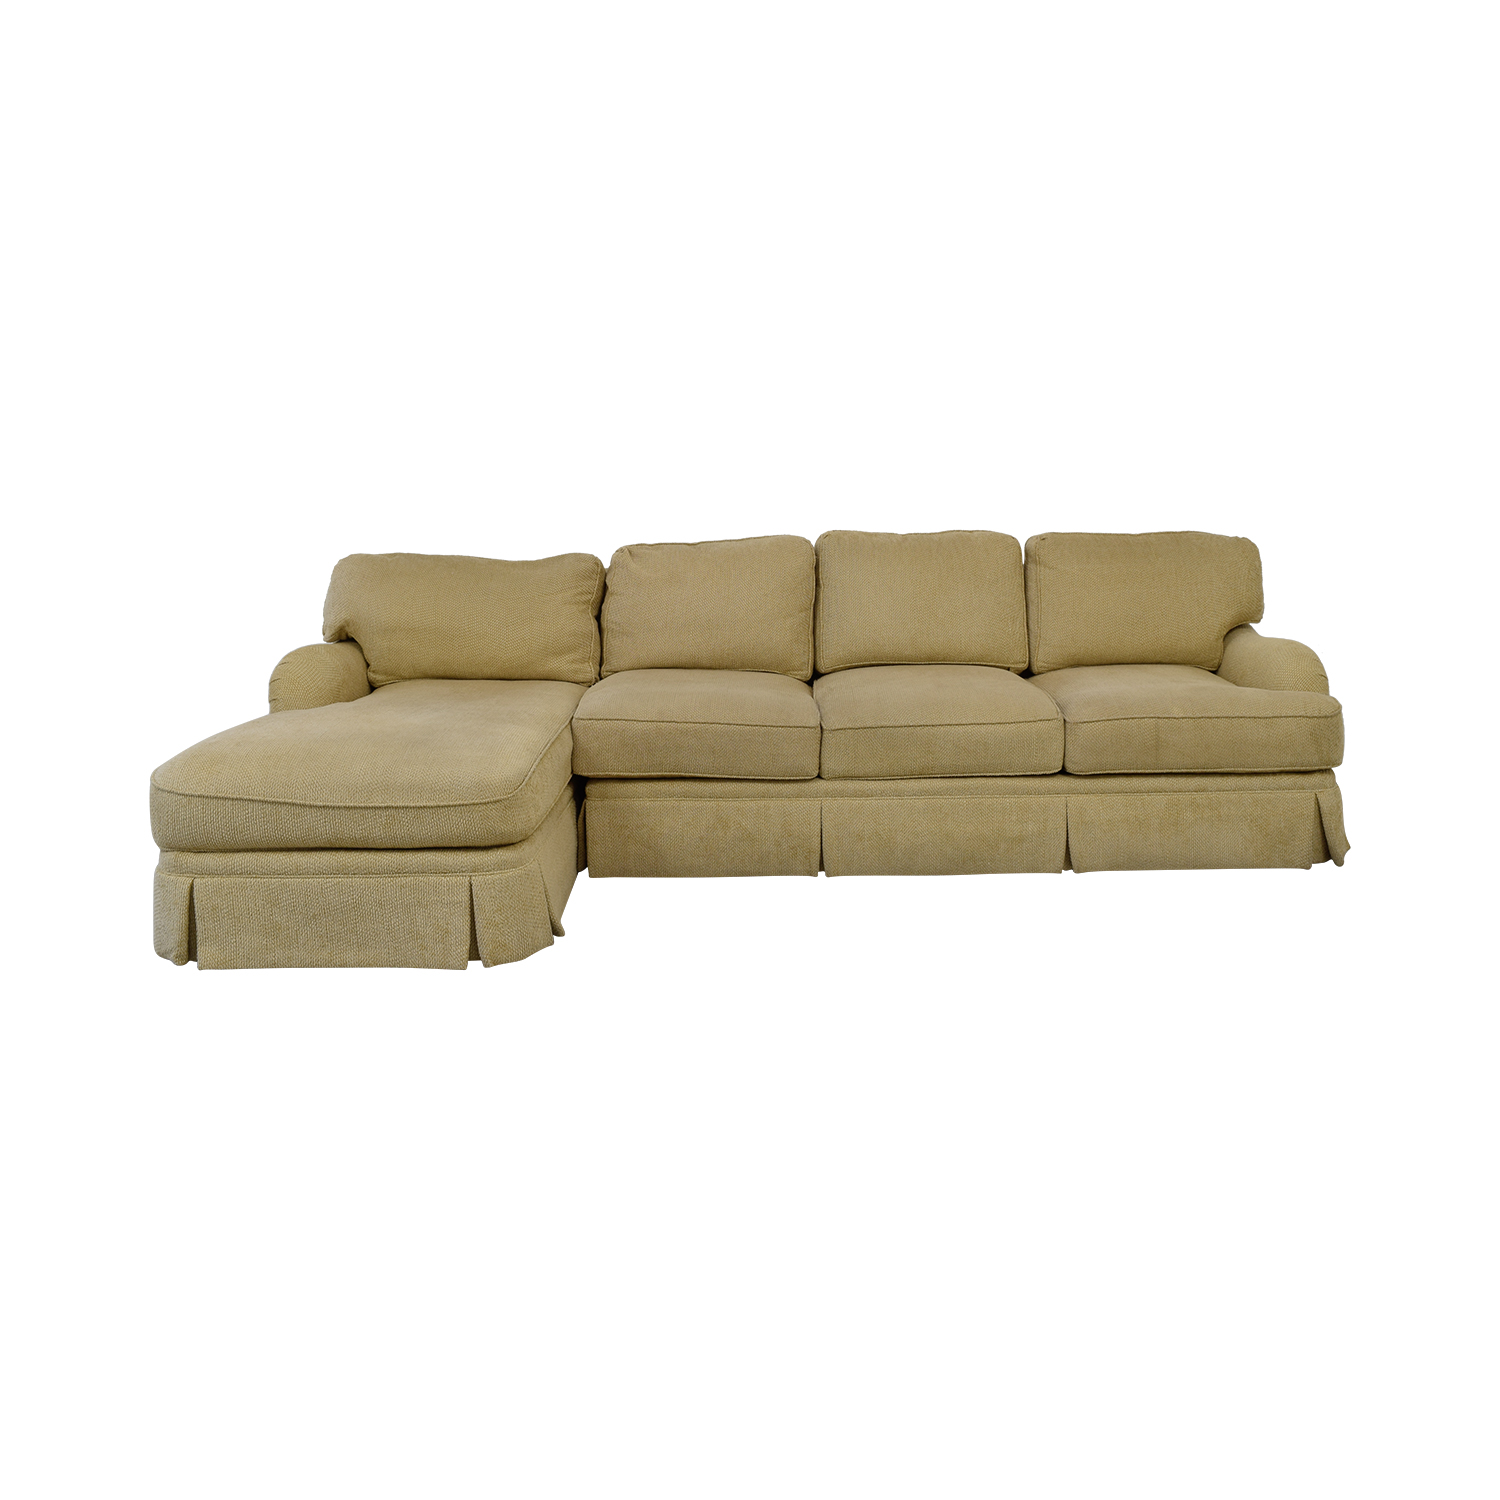 89% OFF - Roche Bobois Roche Bobois Cream Leather Chaise Sectional ...